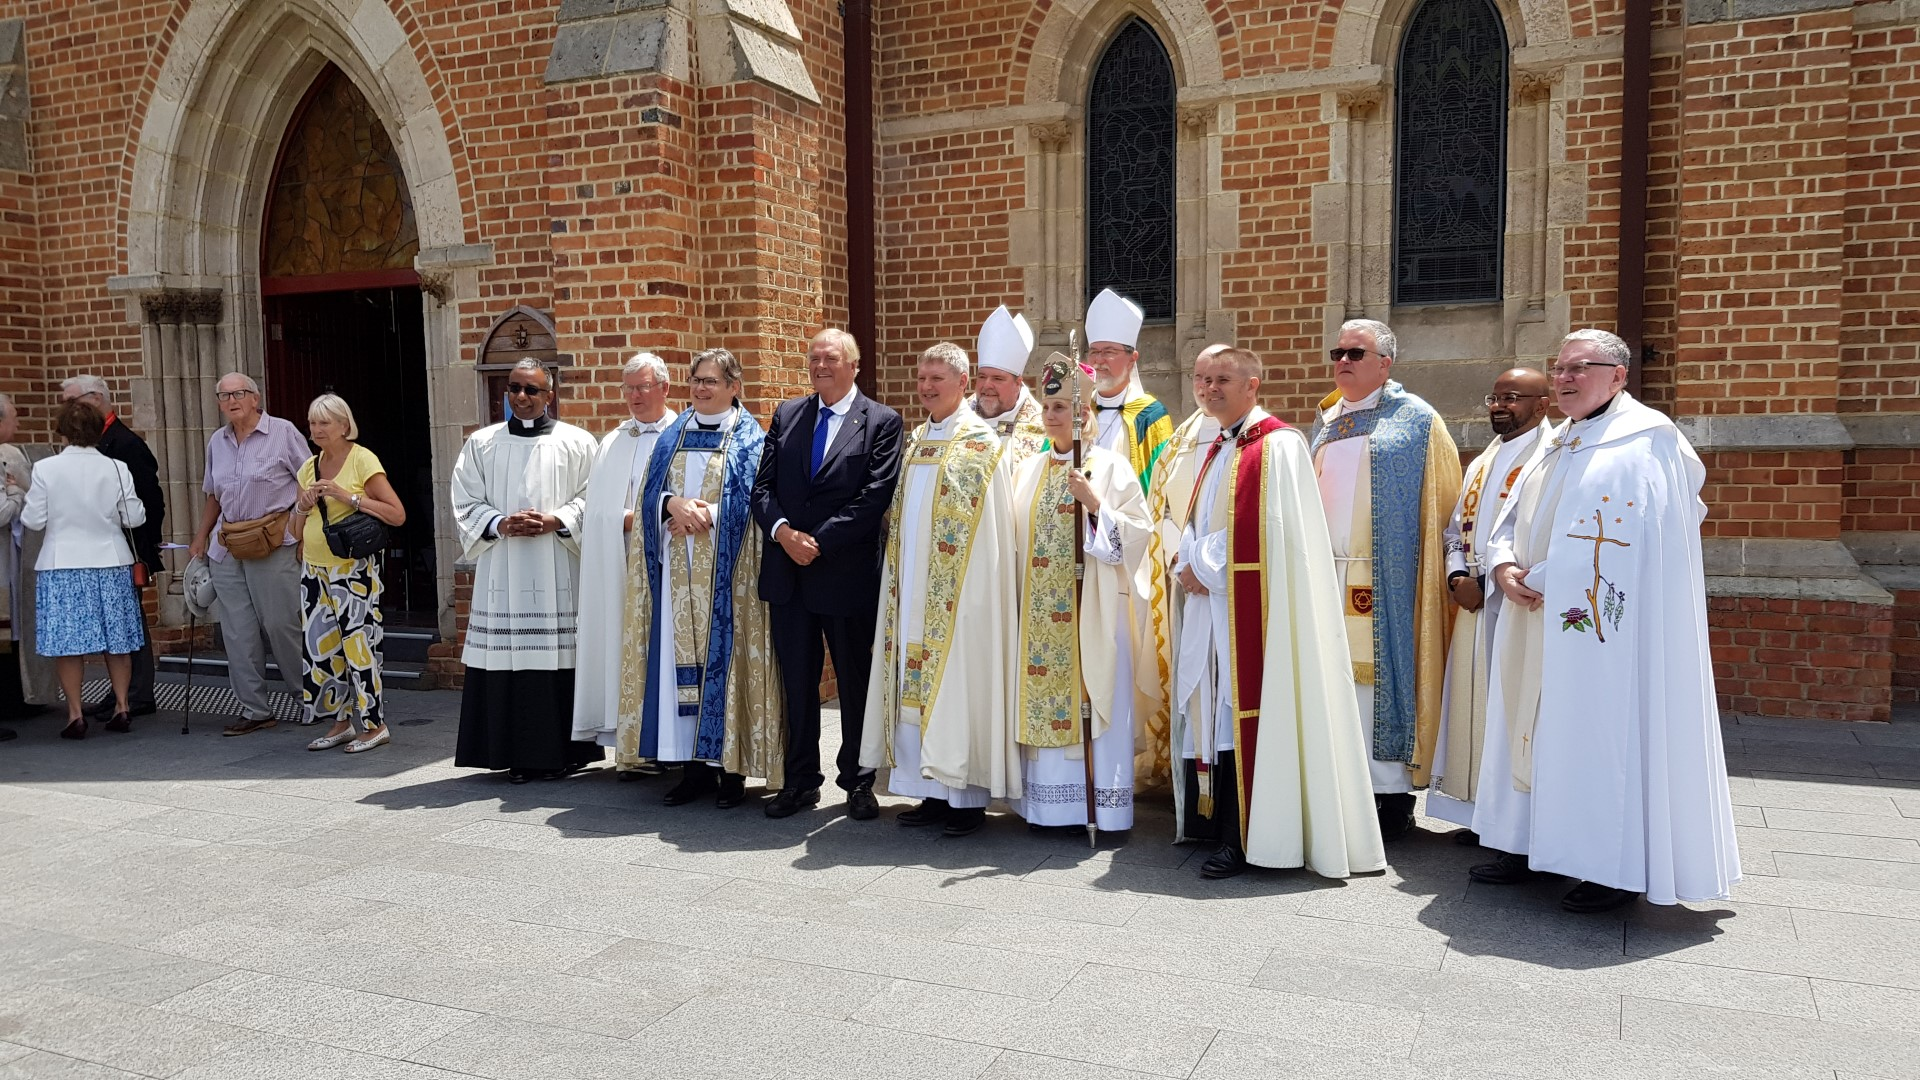 Govenror stands with anglican clergy outside church